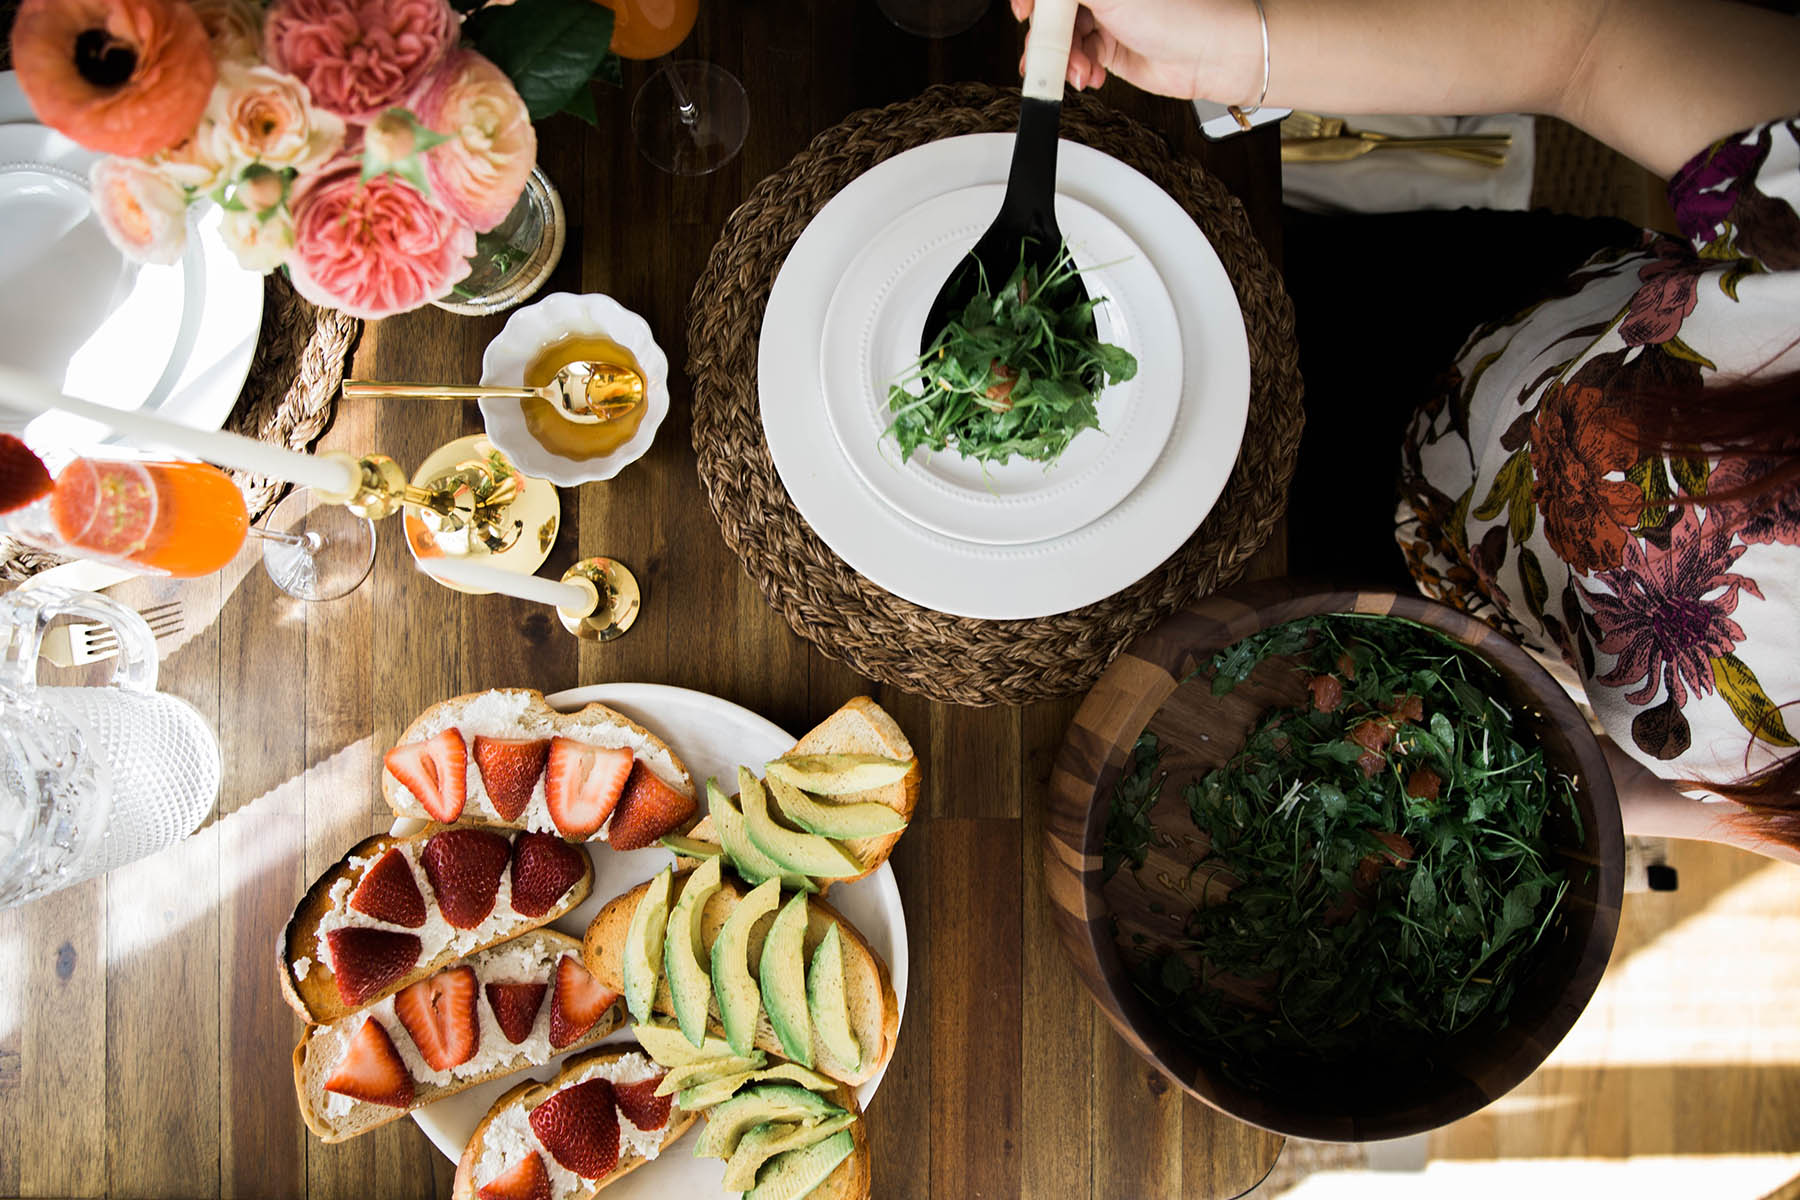 spring brunch setting with avocado toast and arugula salad